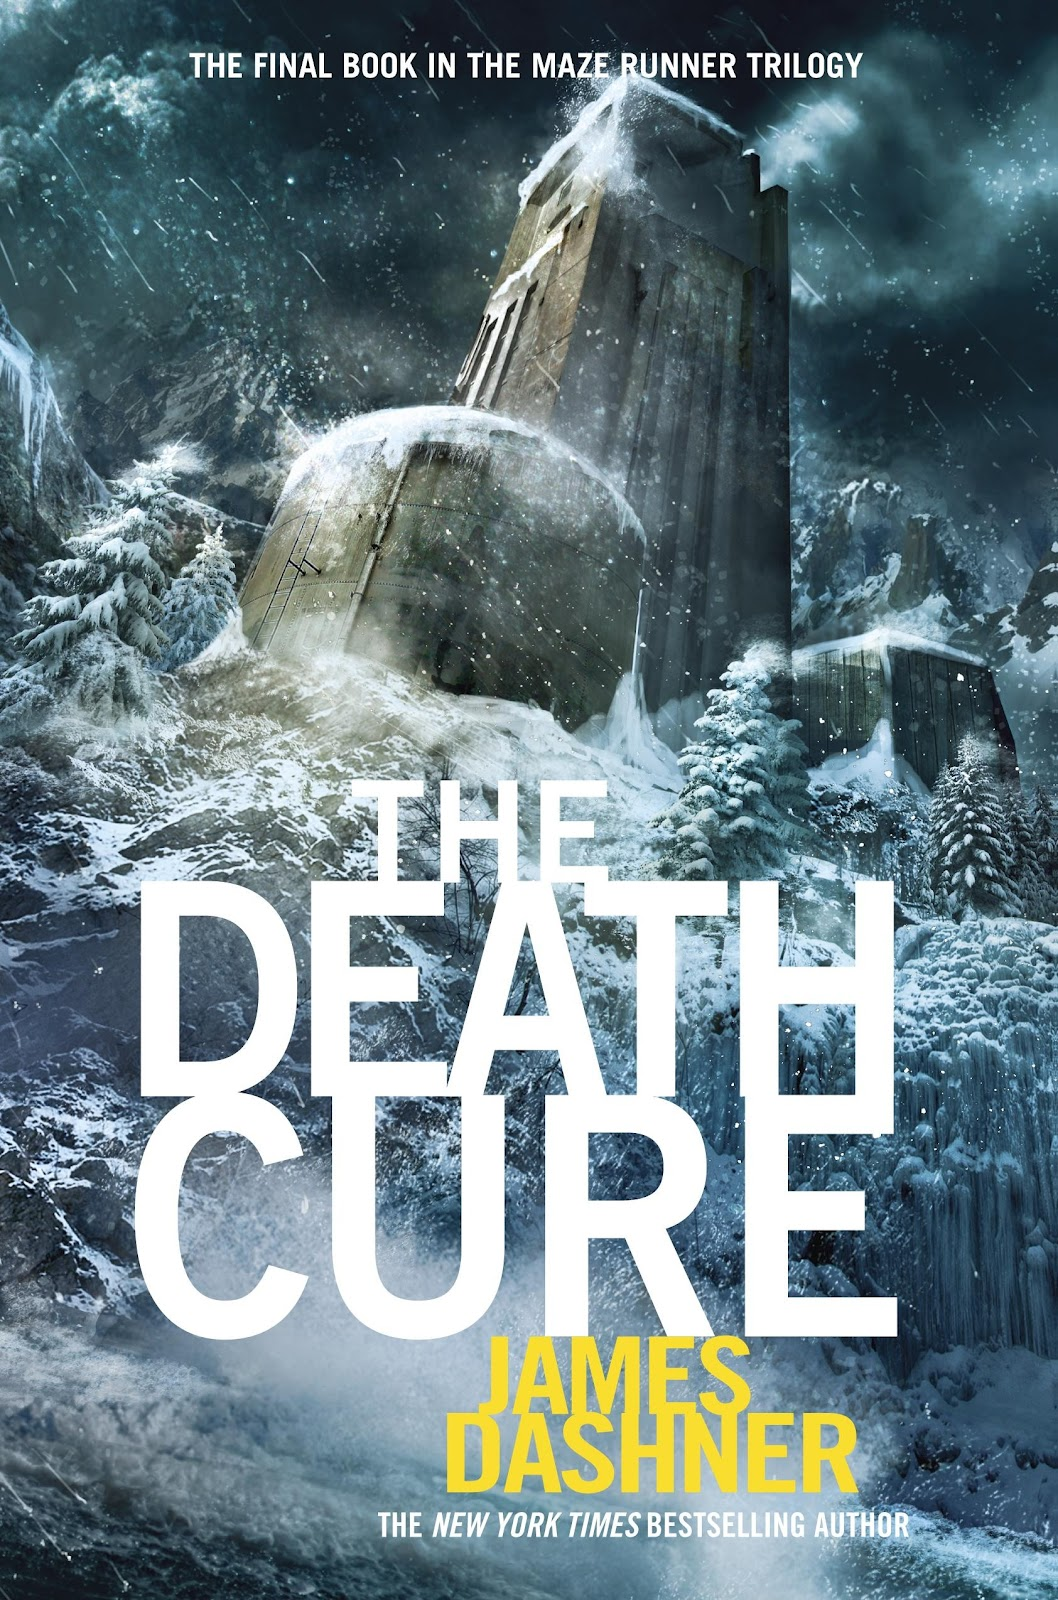 the death cure review Find helpful customer reviews and review ratings for the death cure (maze runner, book 3) at amazoncom read honest and unbiased product reviews from our users.